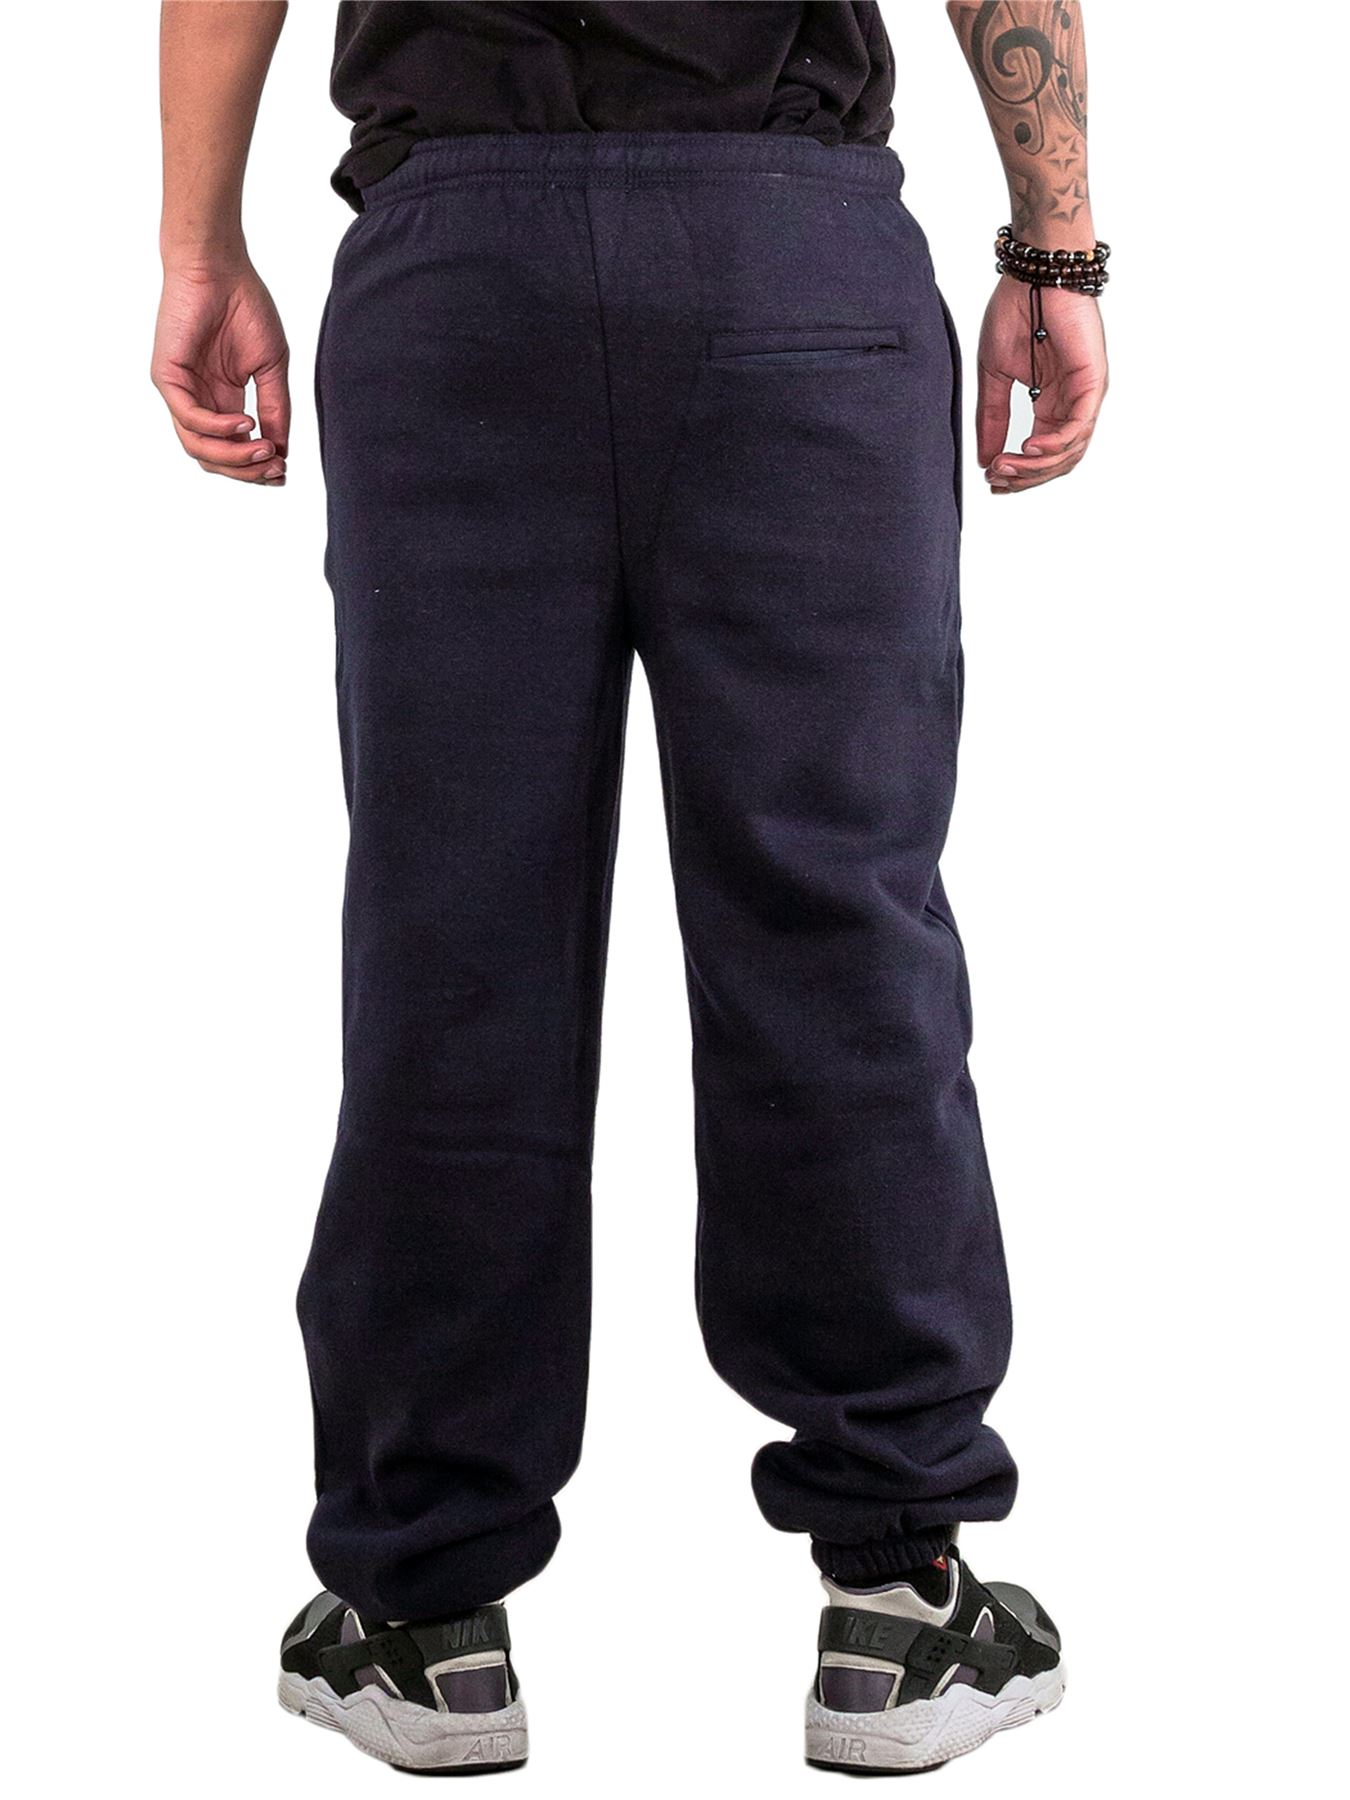 Mens-Fleece-Ribbed-Joggers-Tracksuit-Jogging-Bottom-Loose-Fit-Sweat-Pants-S-5XL thumbnail 11